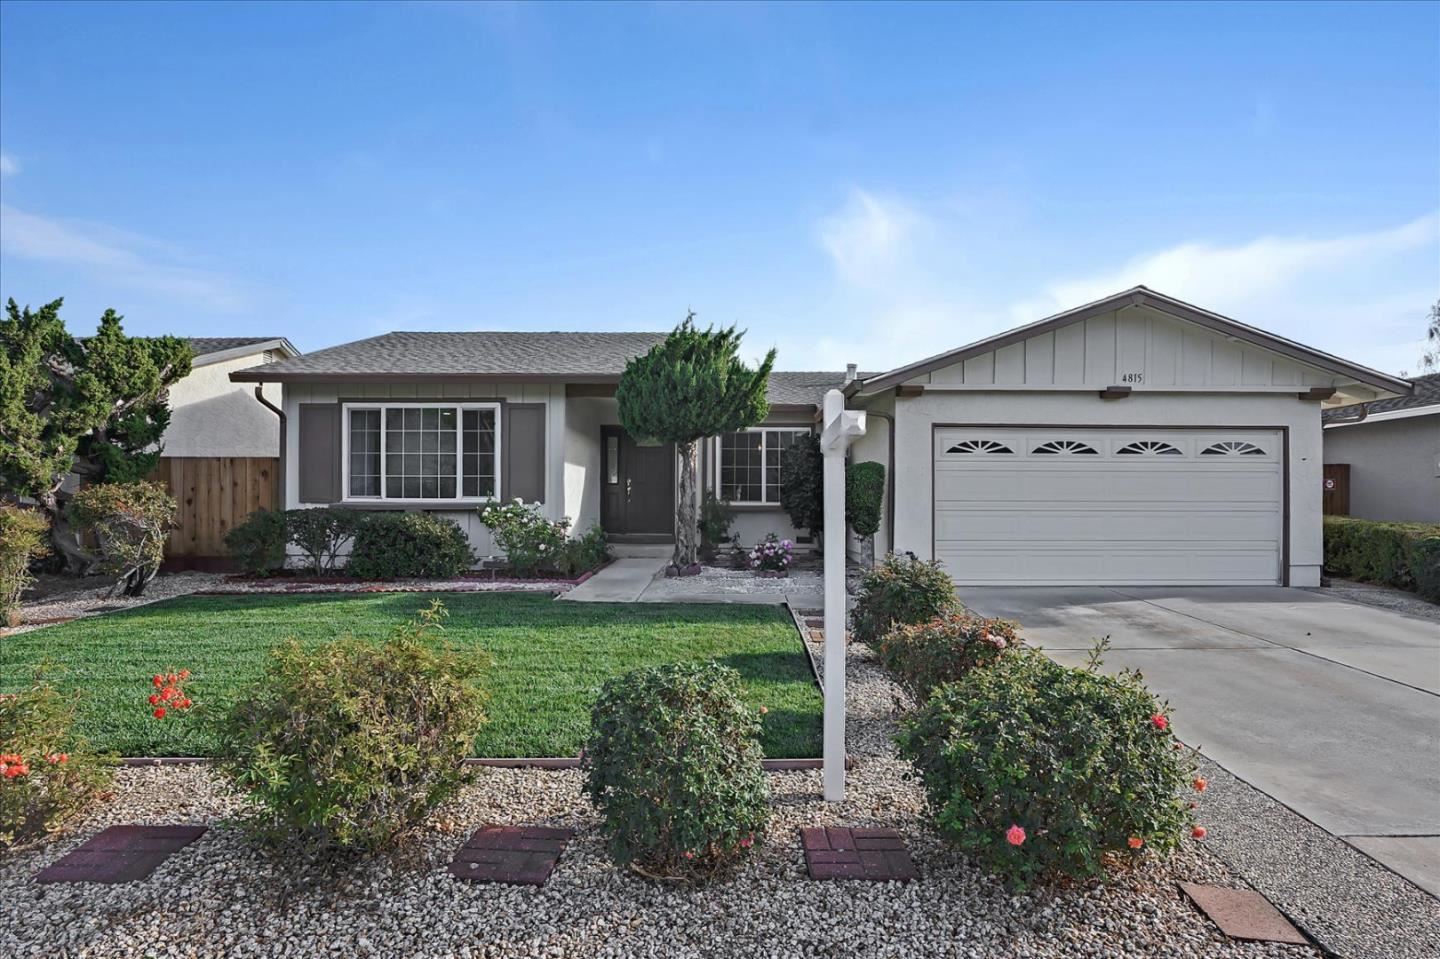 4815 Pinemont Drive, Campbell, CA 95008 - MLS#: ML81866796